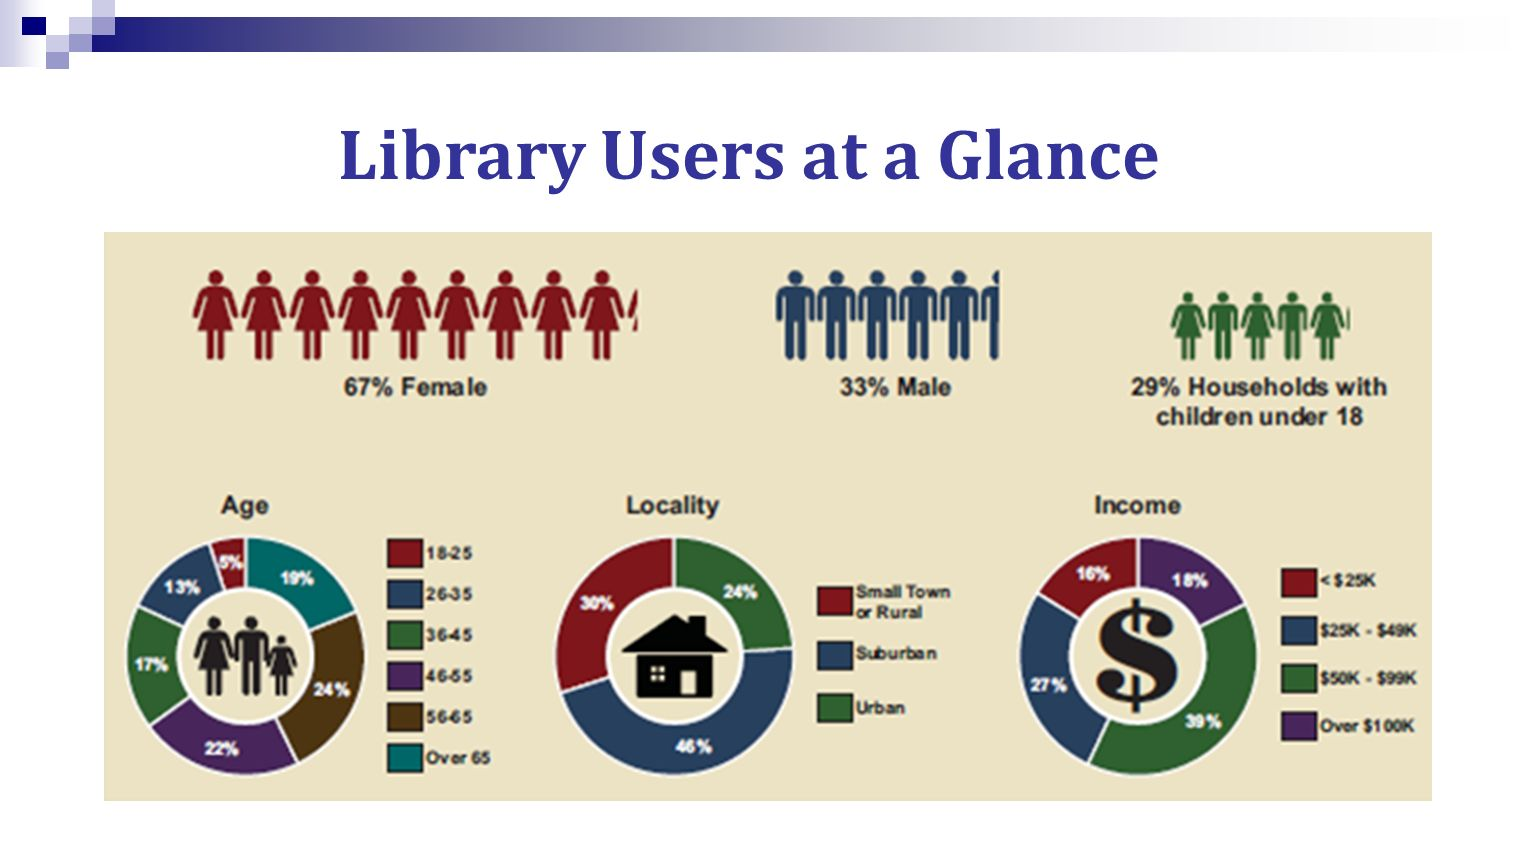 Library Users at a Glance